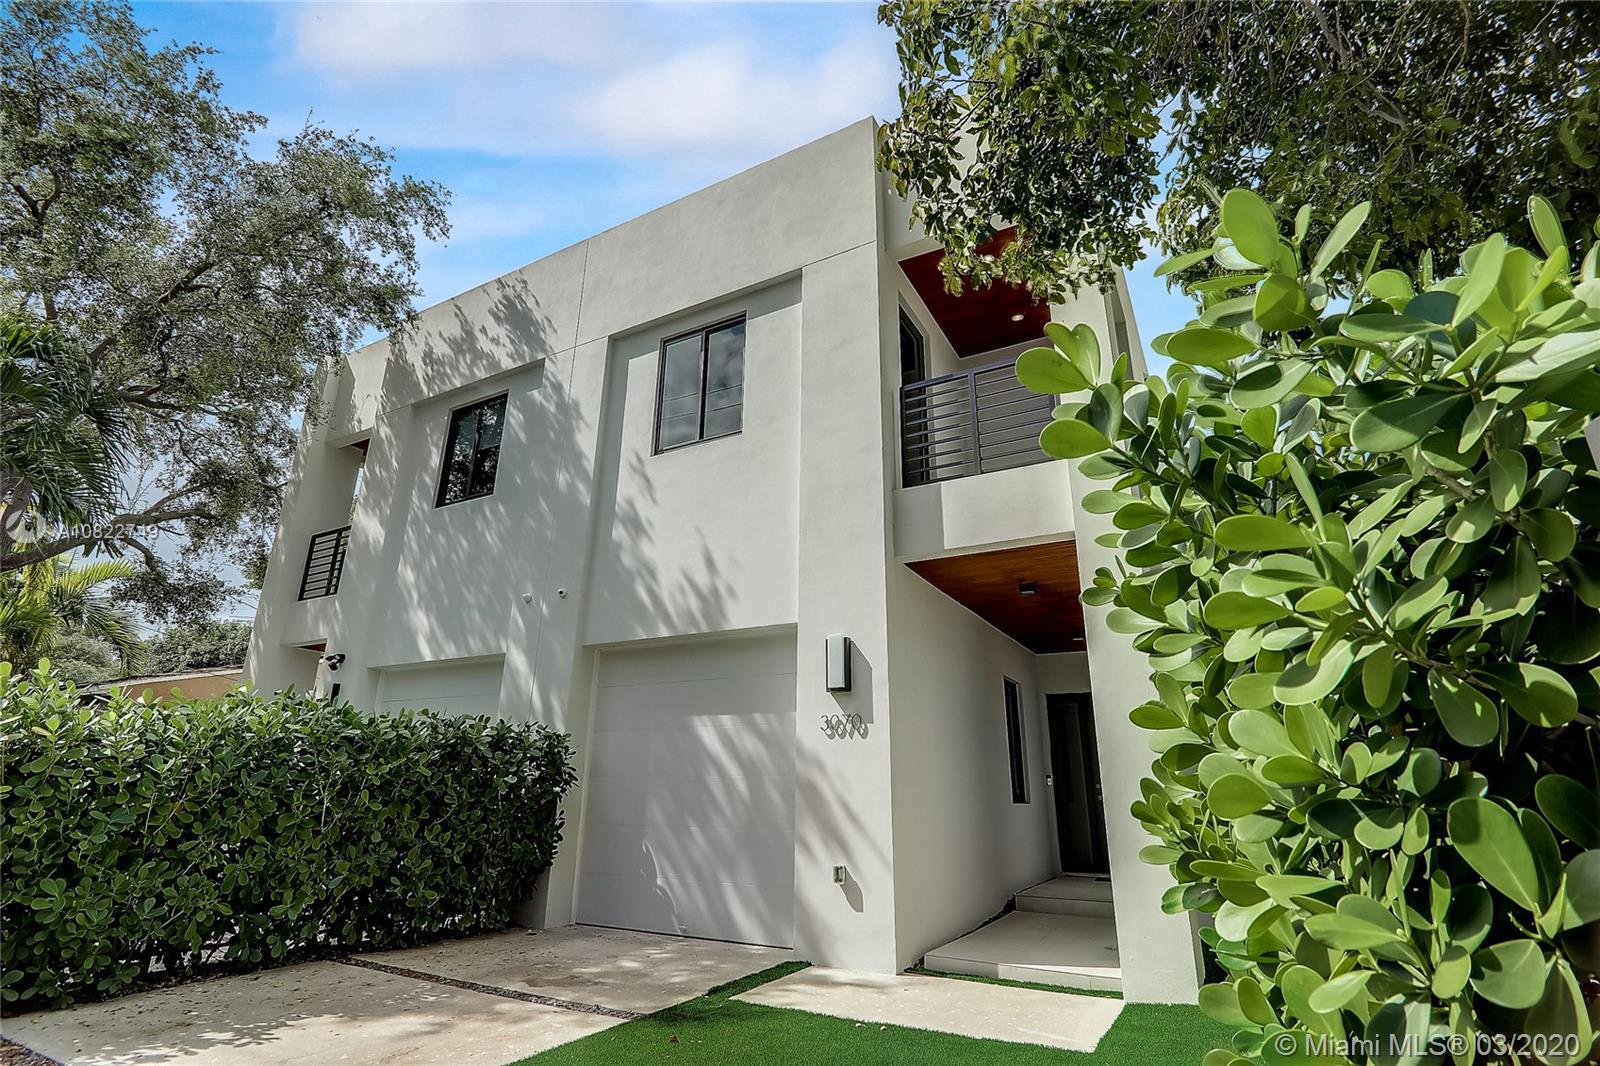 New Construction Coconut Grove Townhouse featuring 3 bedrooms, 4 bathrooms plus den. Top of the line